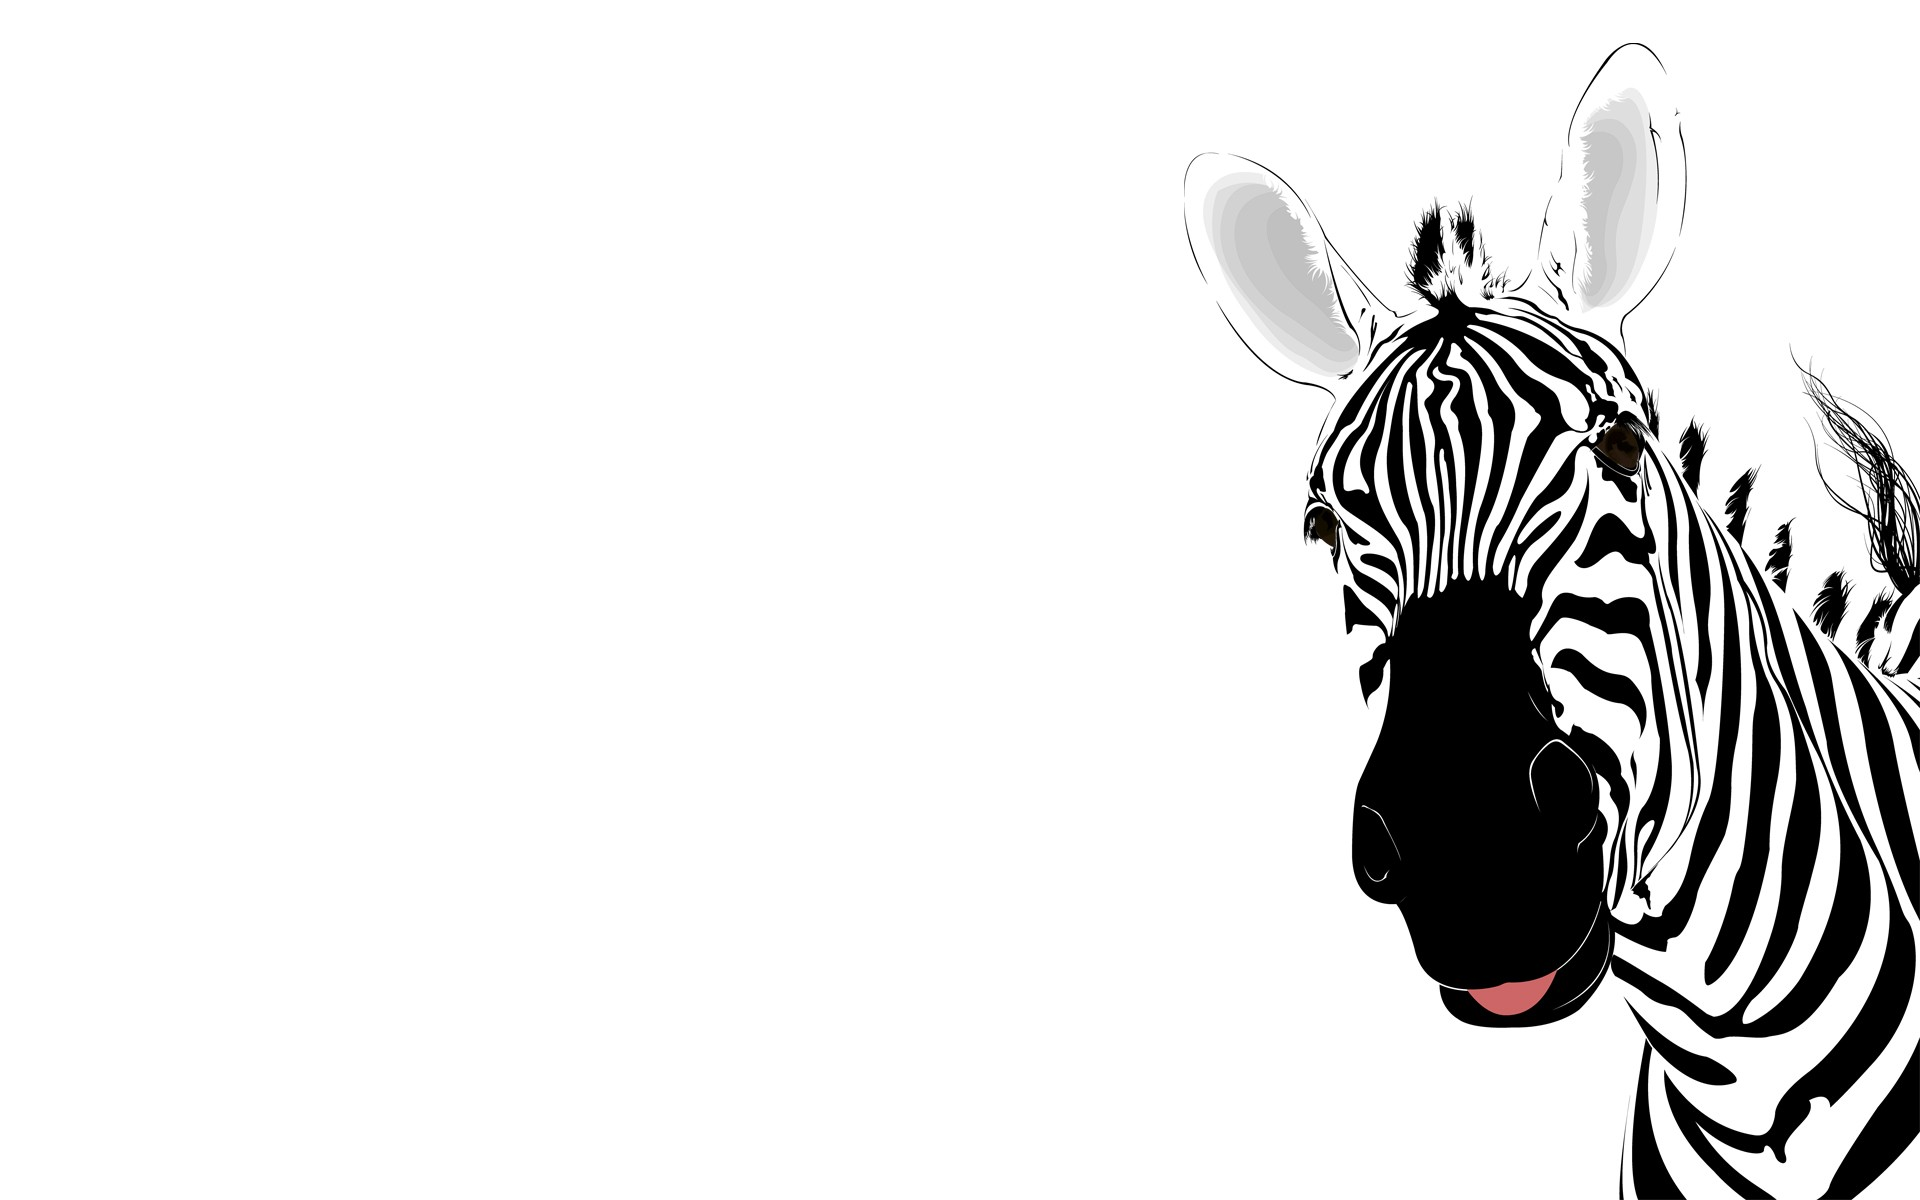 1920x1200 Free Zebra Animal Template Backgrounds For Powerpoint